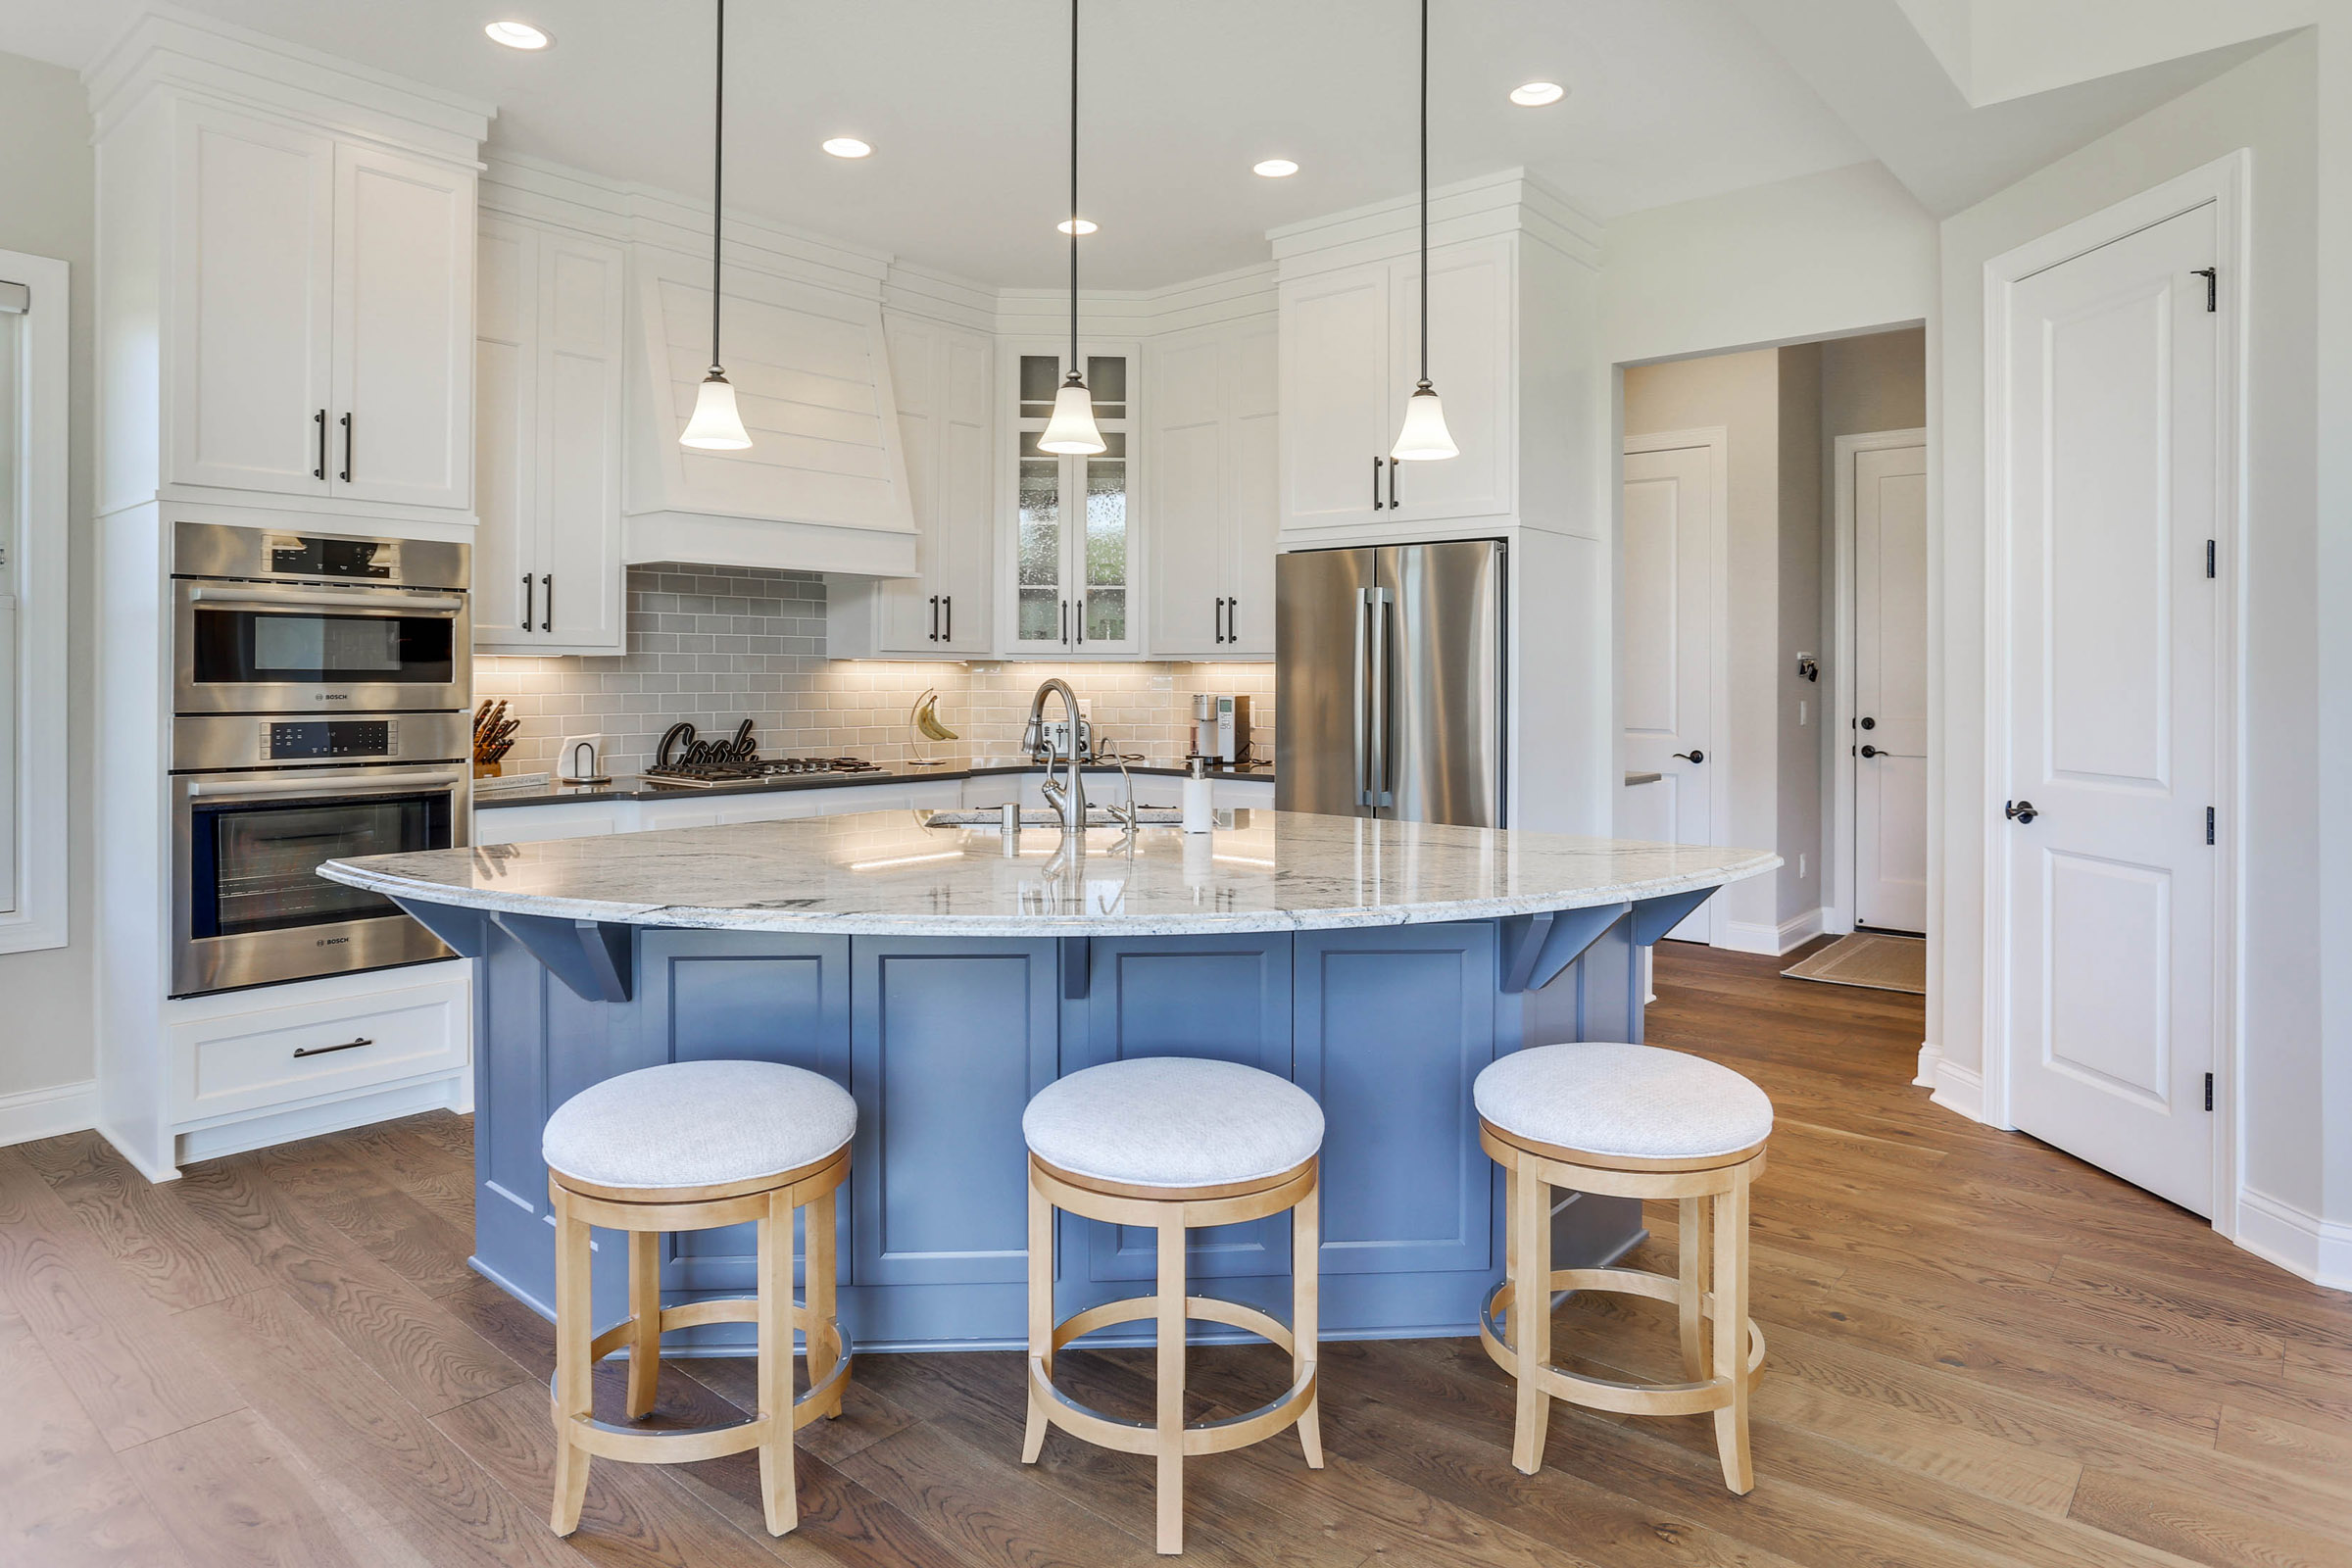 TJB Home Plan #499 White Kitchen with Blue Accent Island